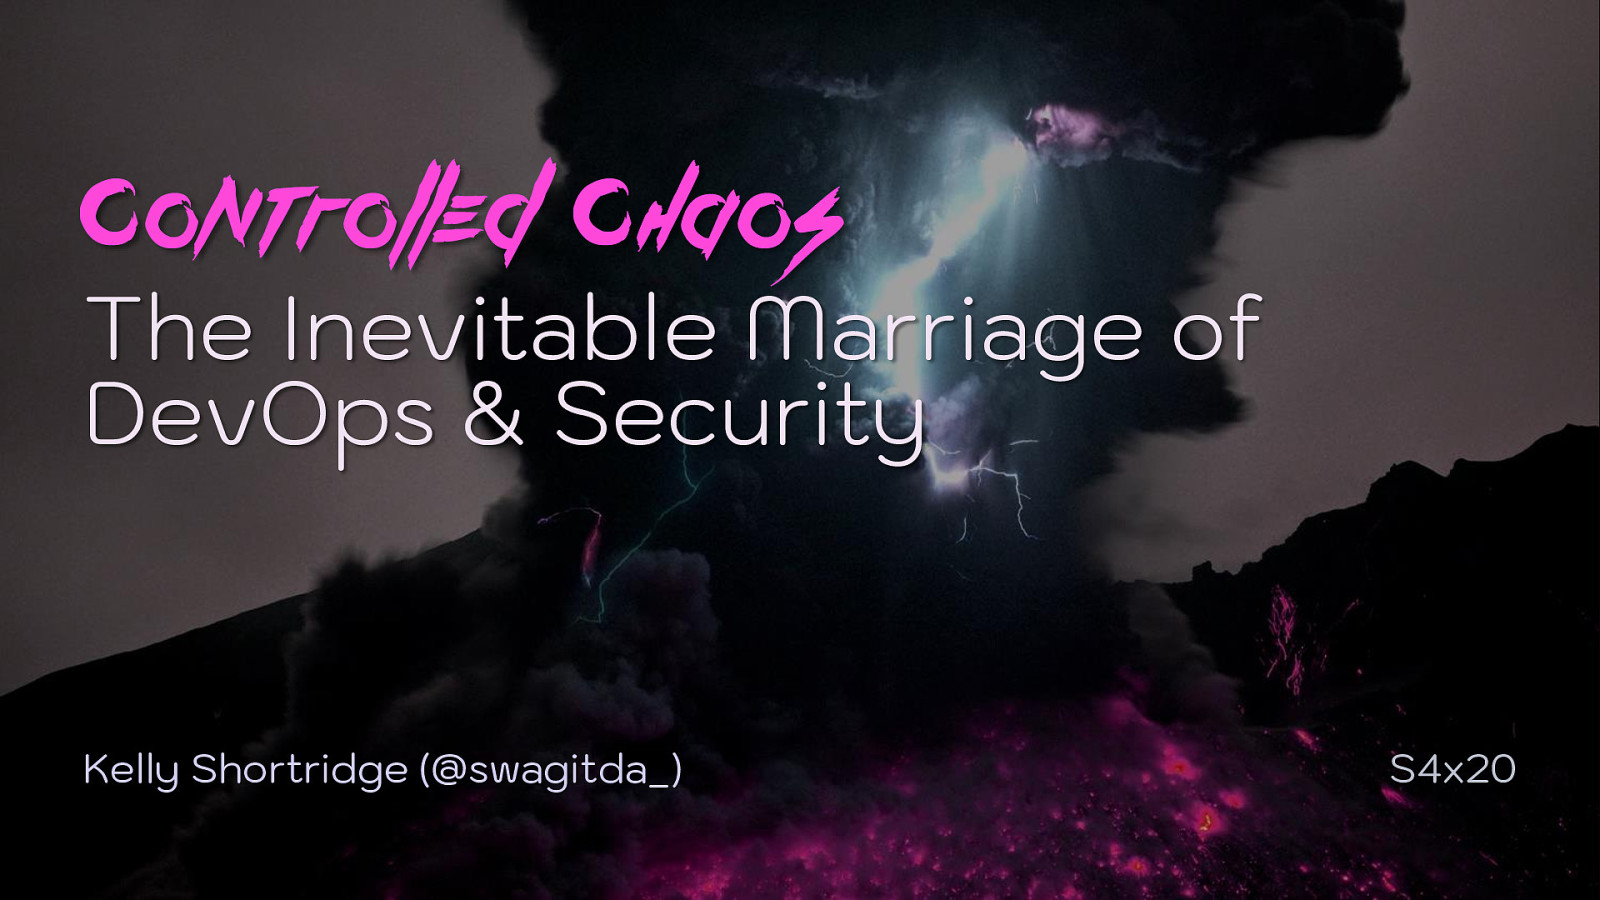 Controlled Chaos: the Inevitable Marriage of DevOps & Security (Keynote)